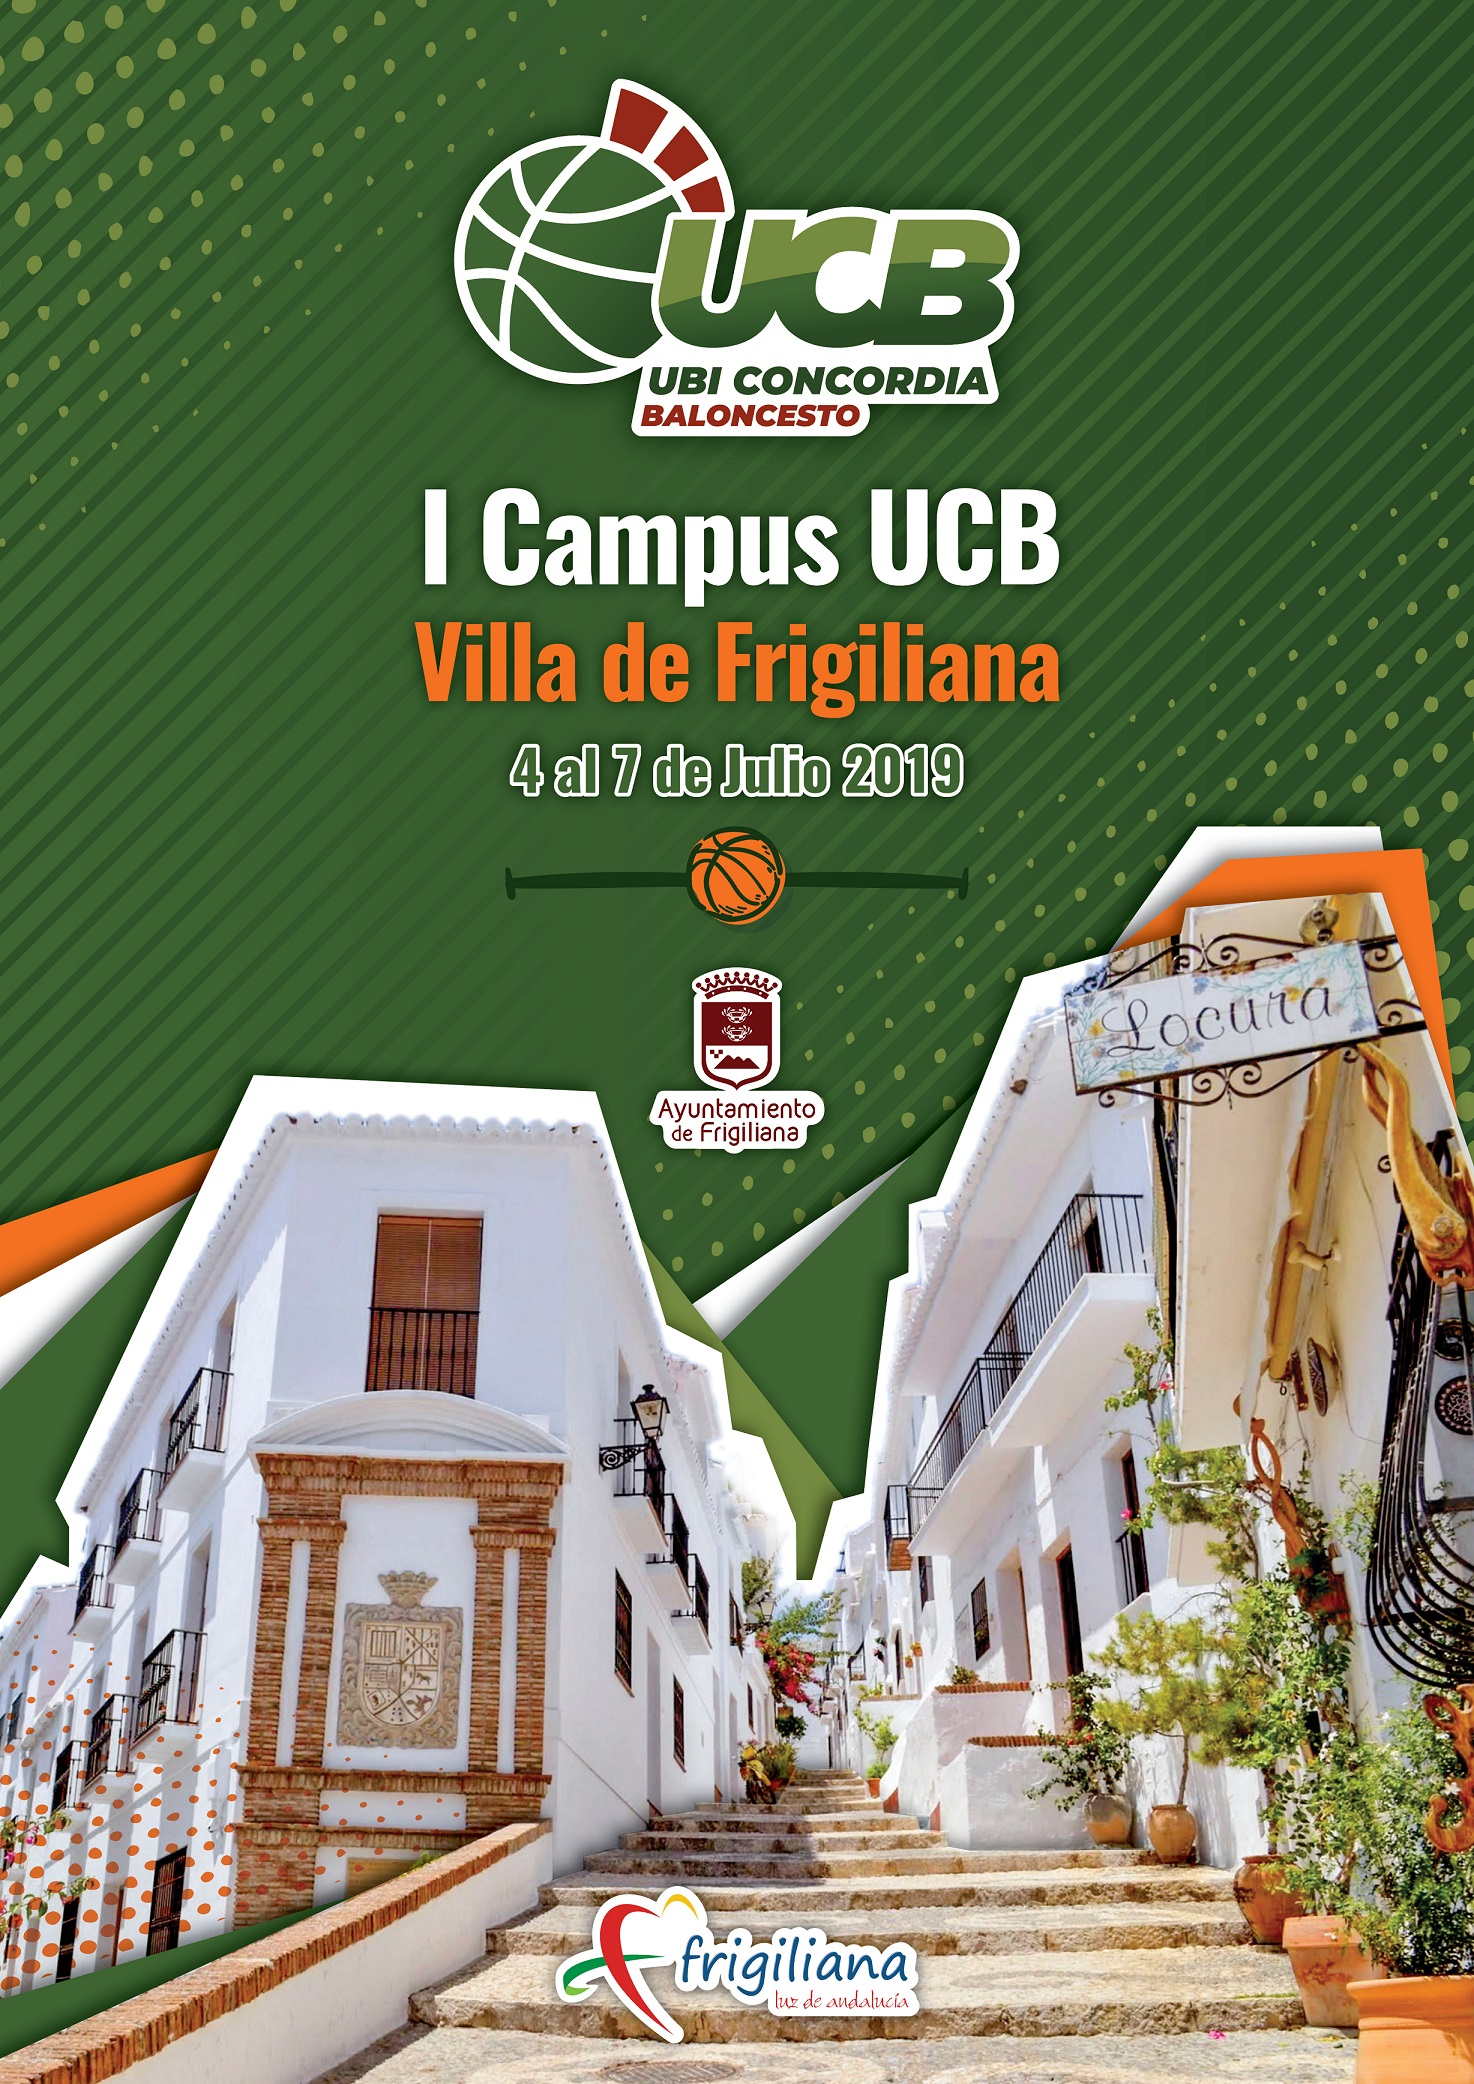 Registration open for the UCB Basketball Campus